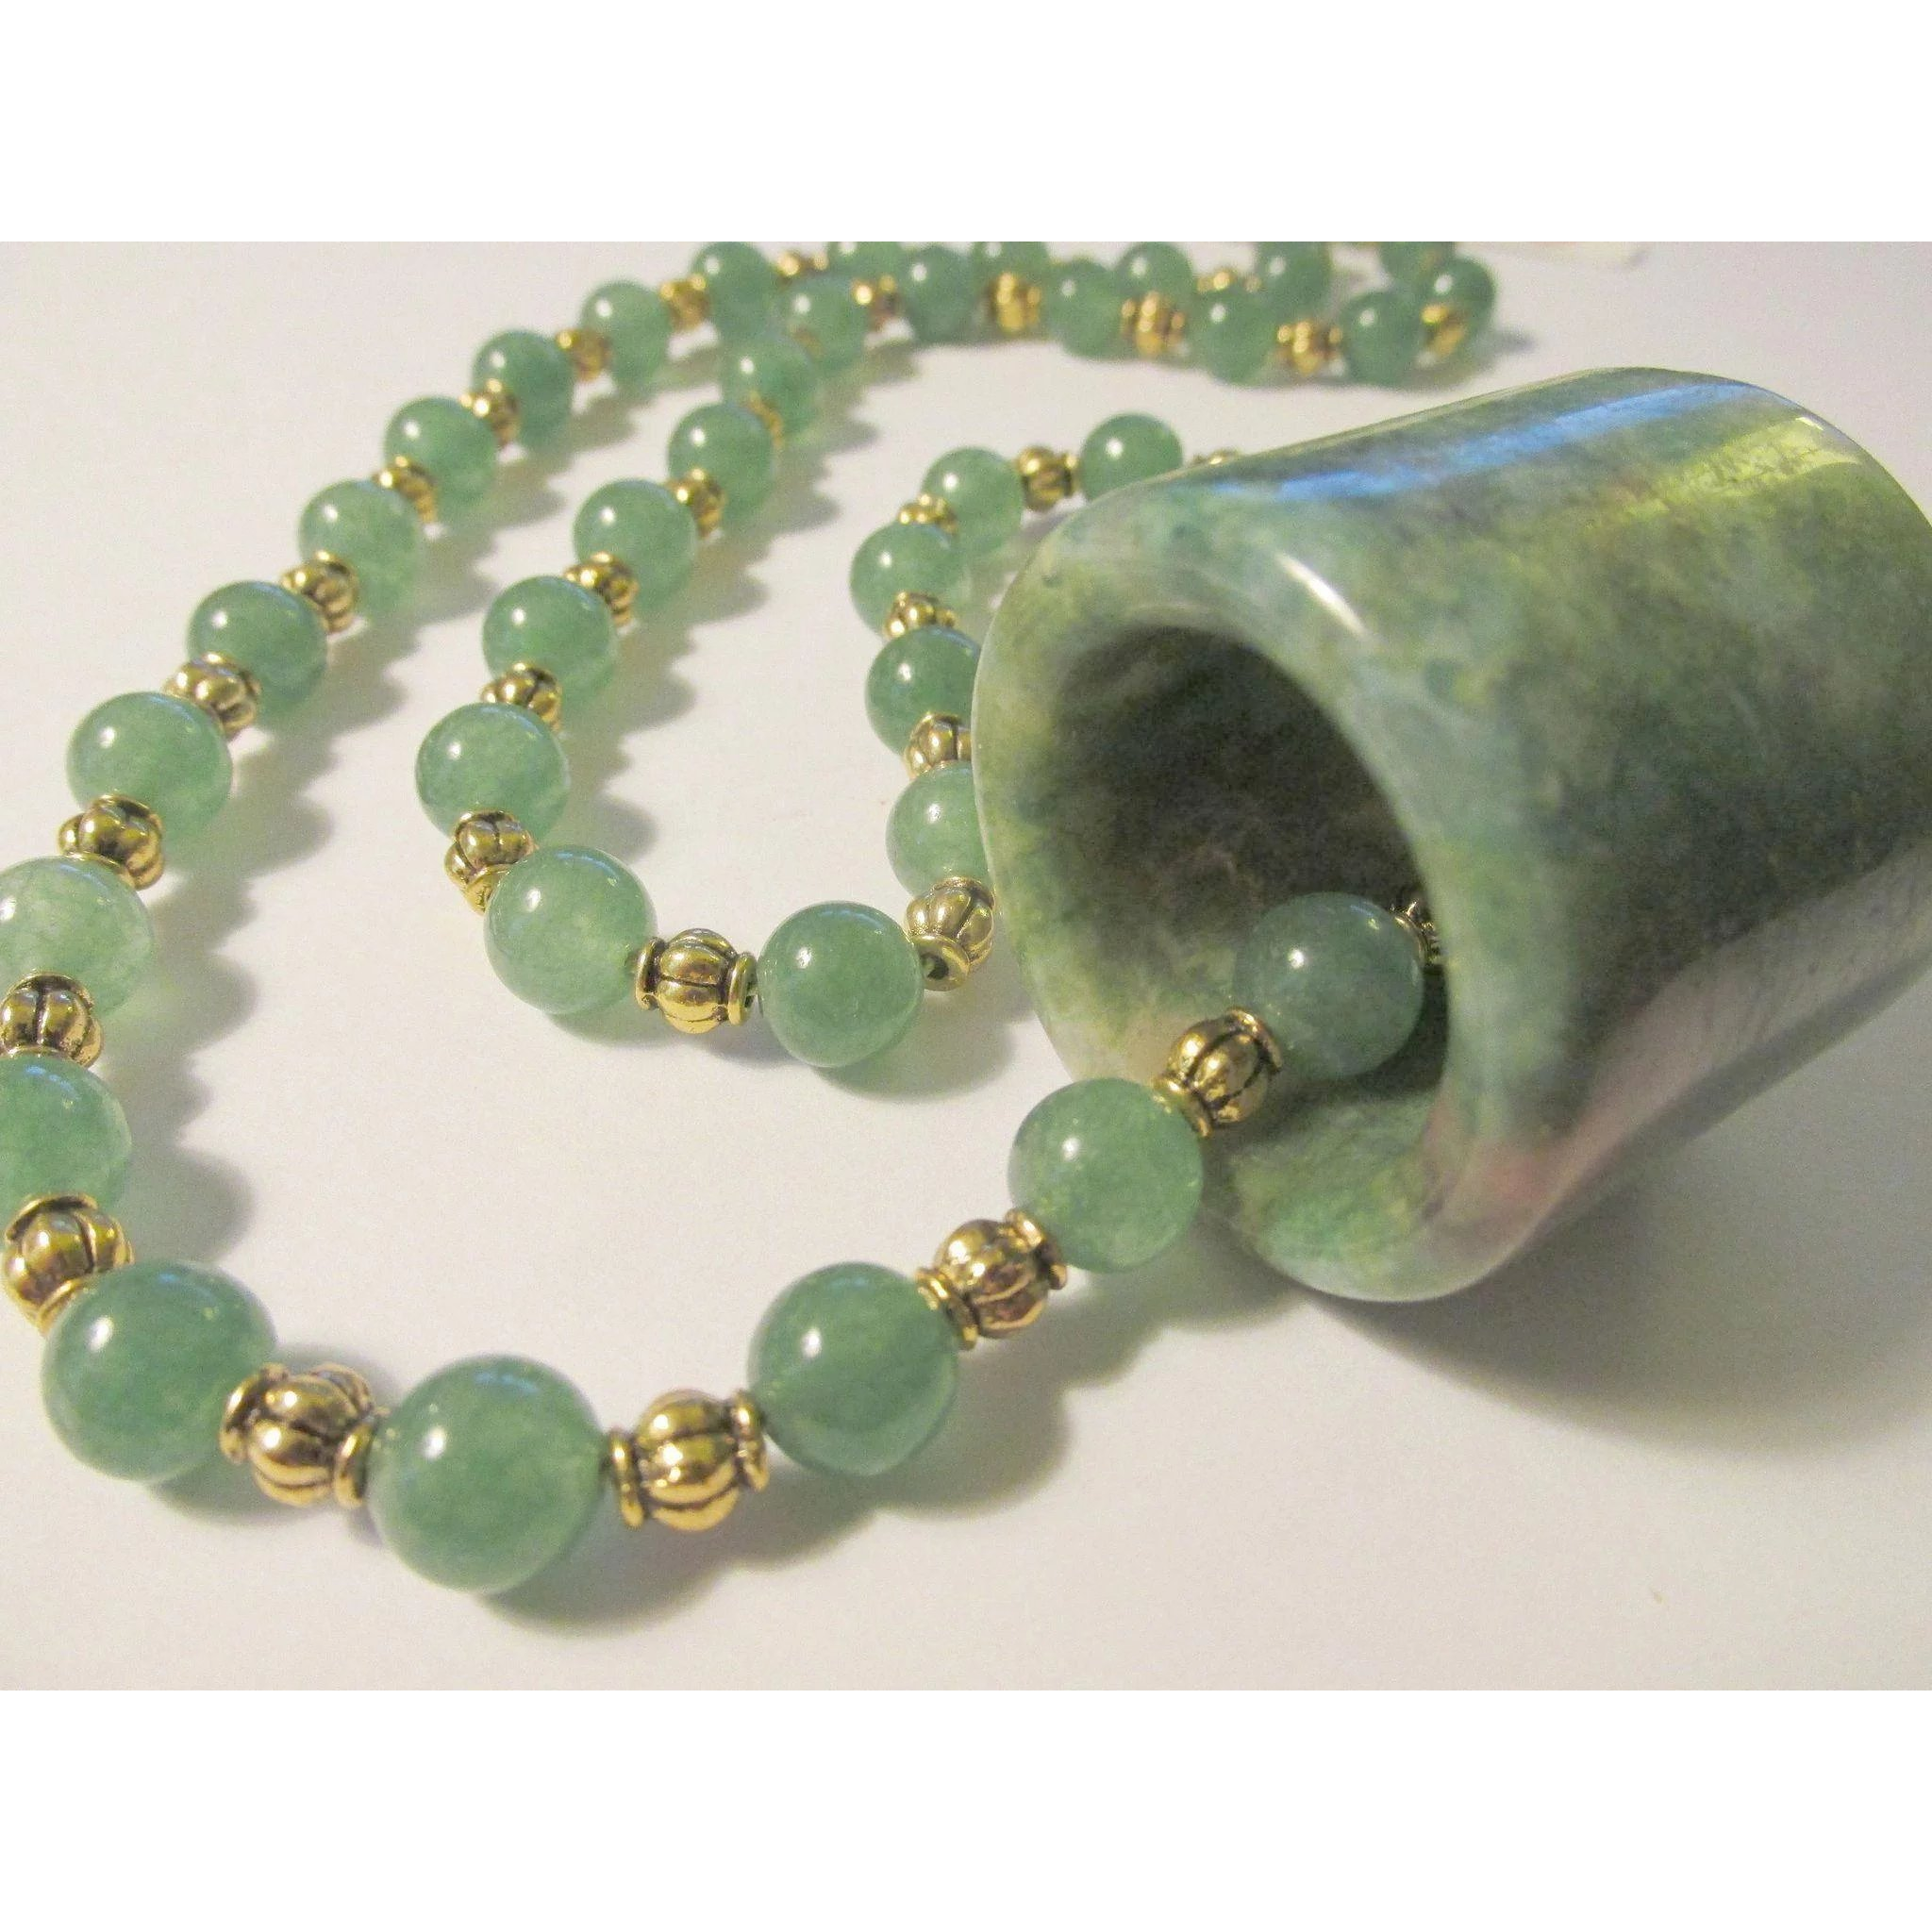 necklacae paradise copy chinese products charm jade beads nephrite necklace of